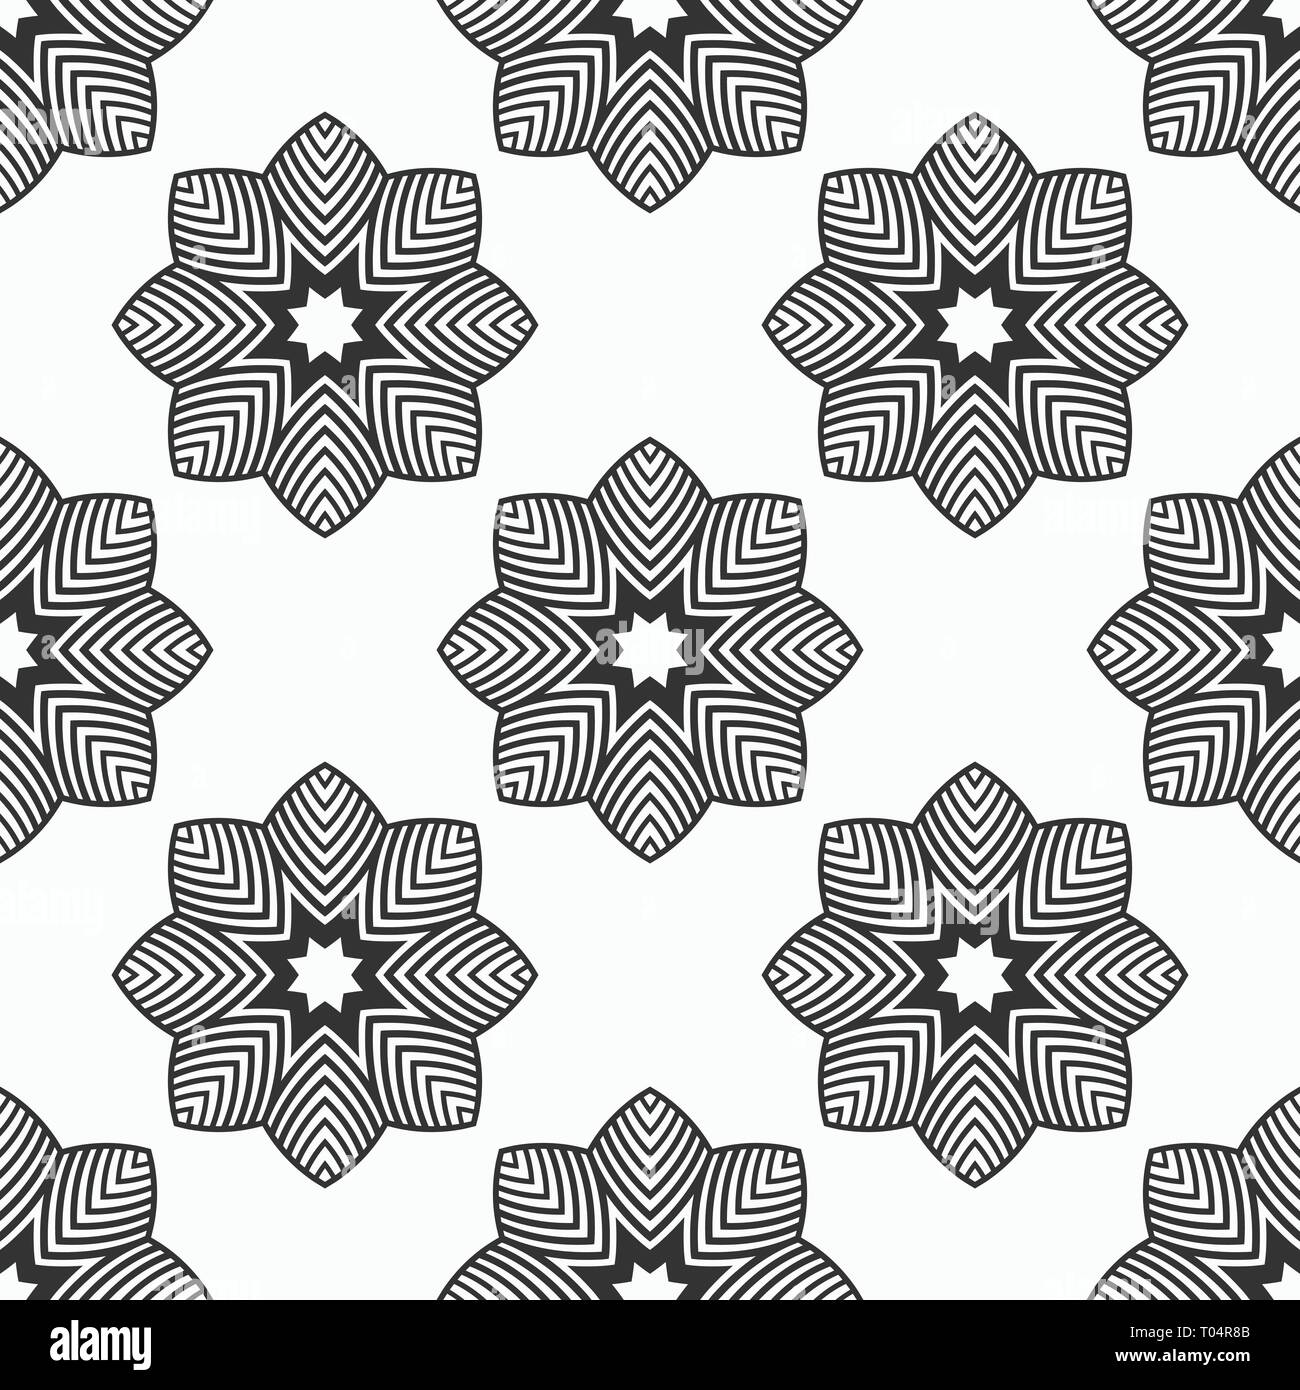 Abstract Seamless Pattern Regularly Repeating Stylized